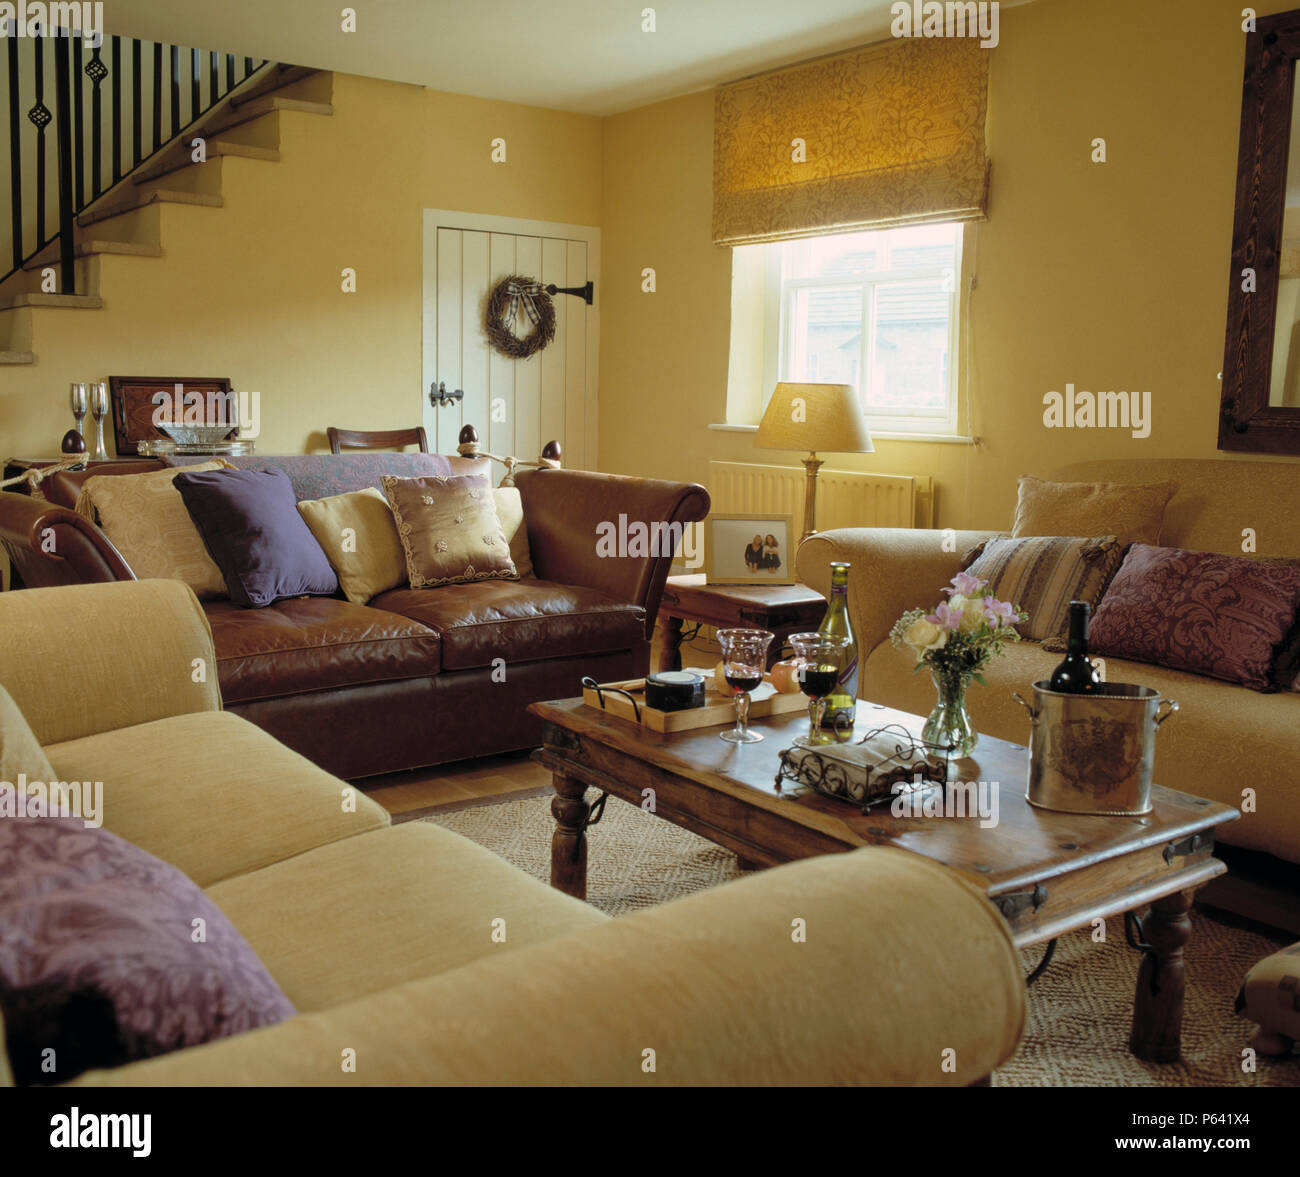 Brown Leather Sofa With Two Cream Sofas In Pale Yellow Country Sitting Room  With An Indonesian